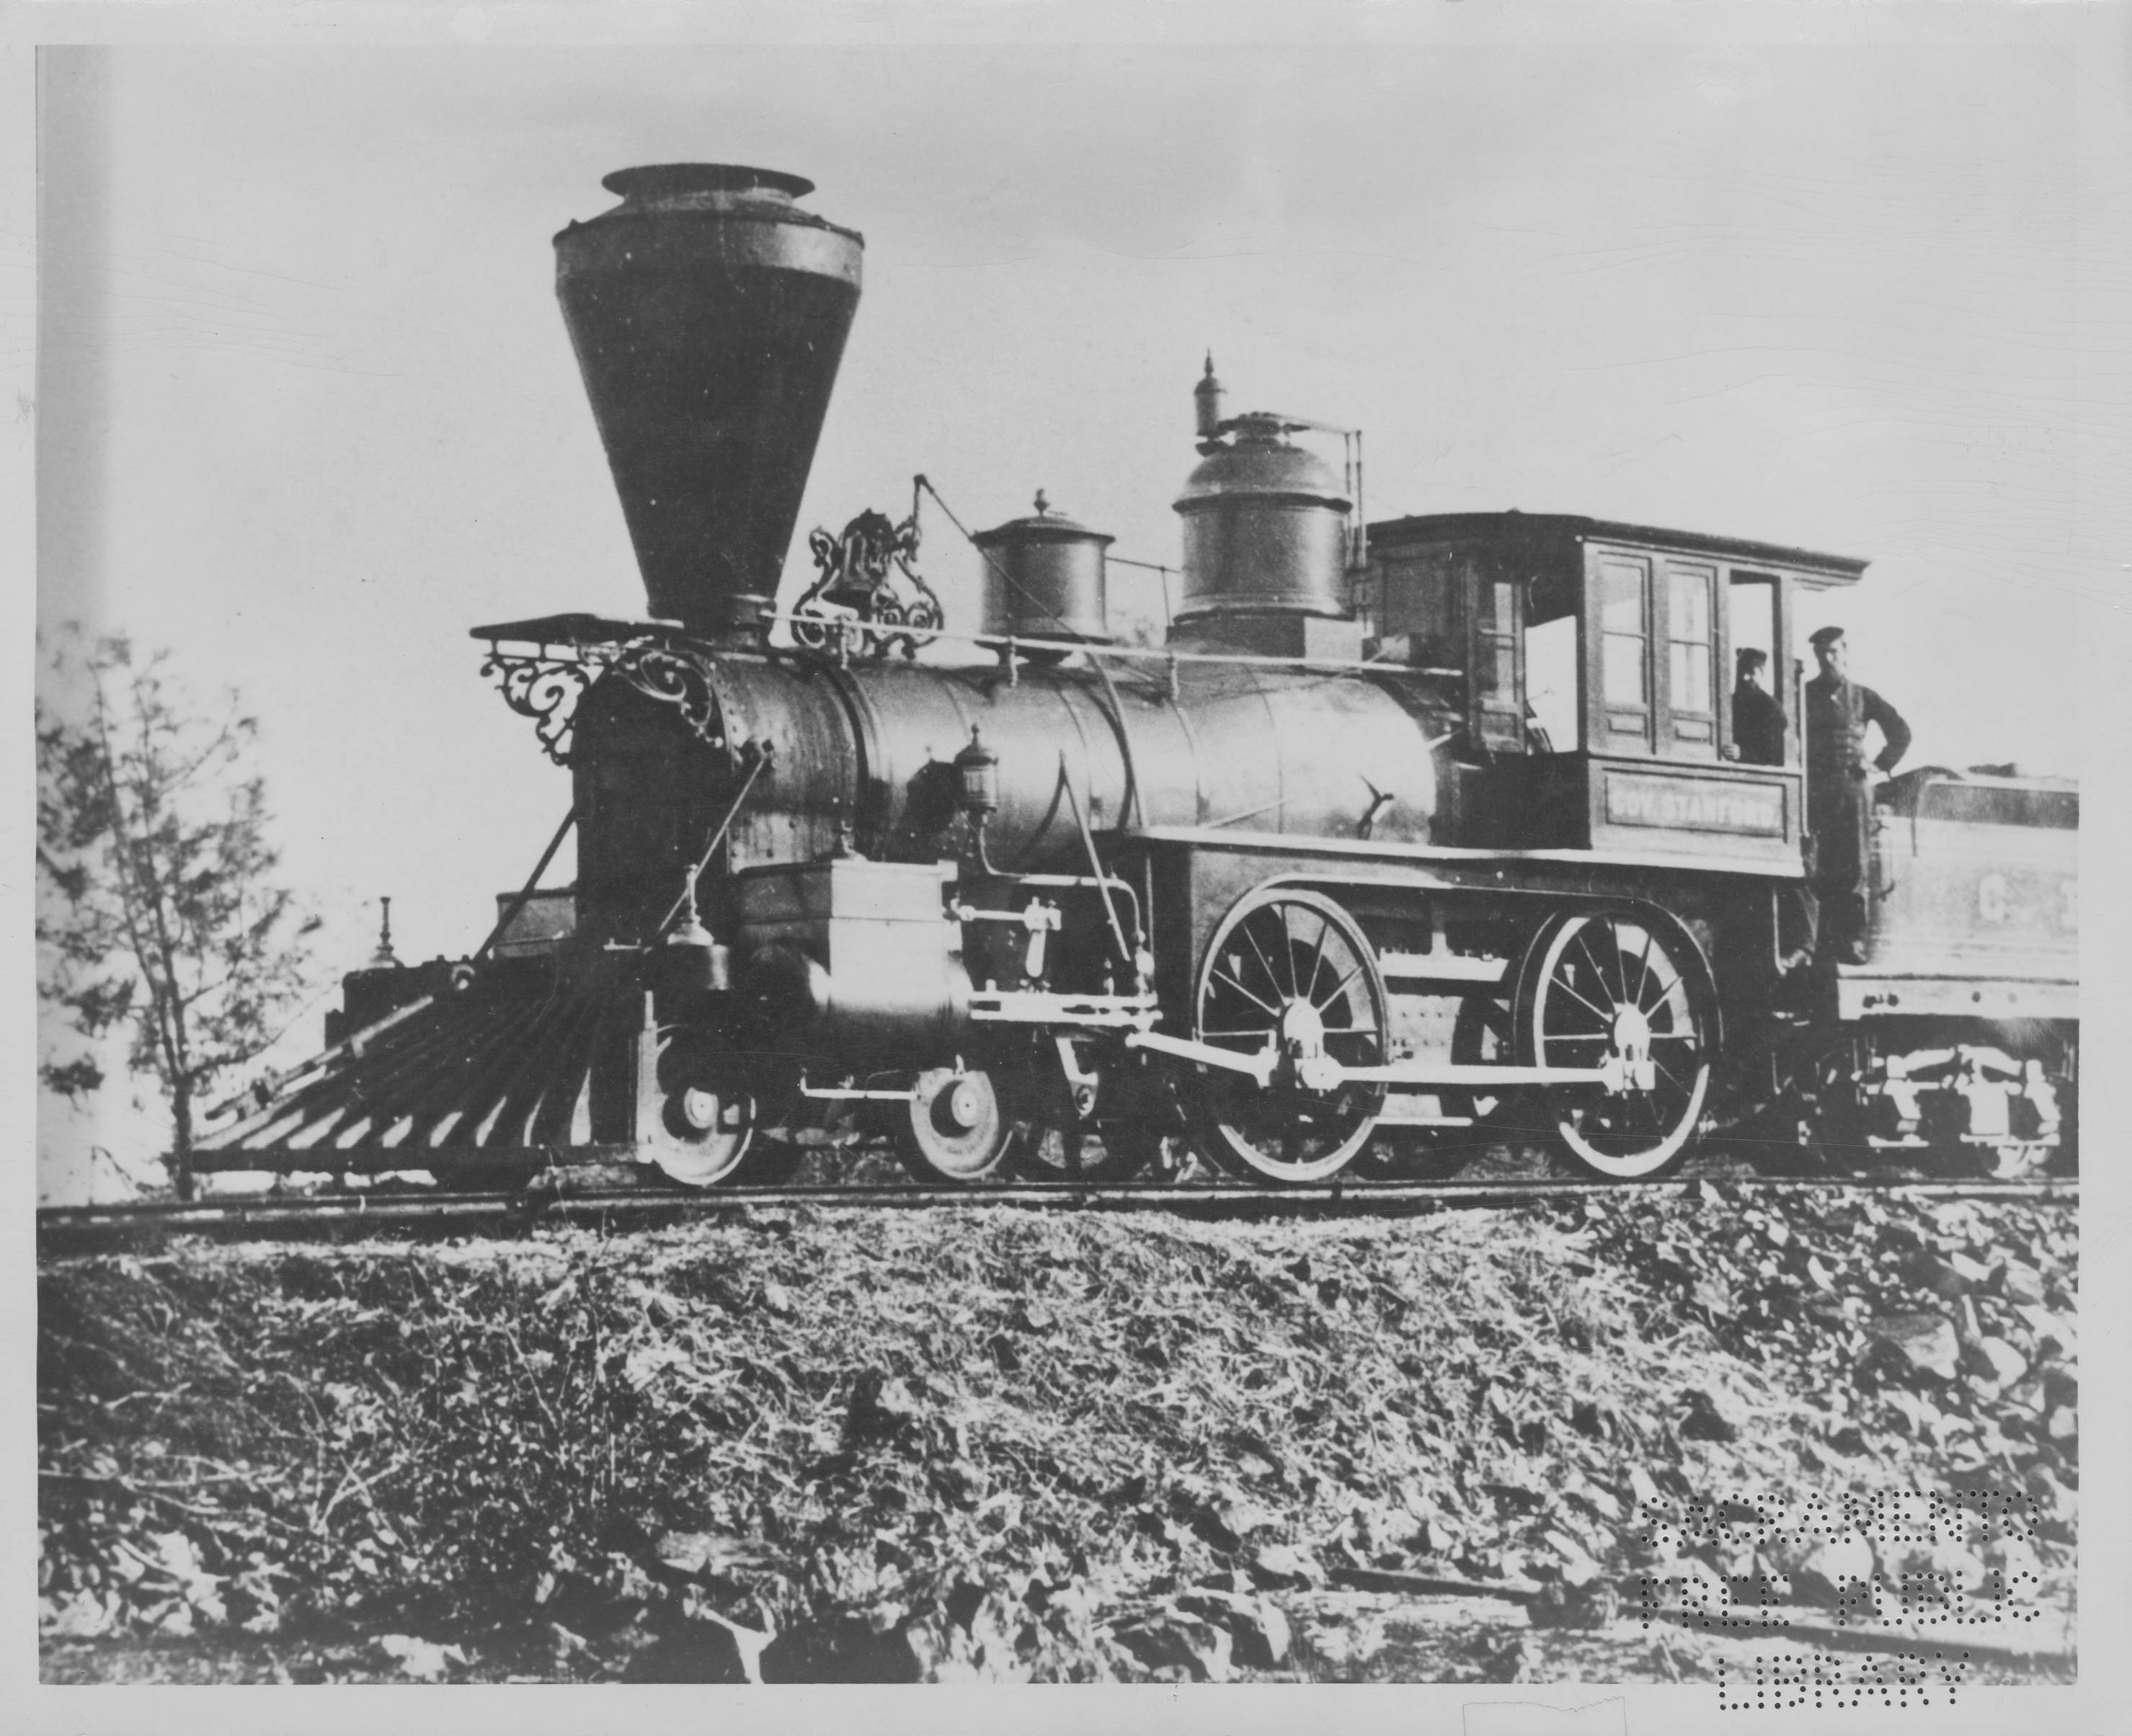 "The ""Governor Stanford,"" Central Pacific's first locomotive--built while Leland Stanford was serving as governor from 1862-63 (California governors only served 2-year terms at the time). The locomotive resides in the nearby Railroad Museum."